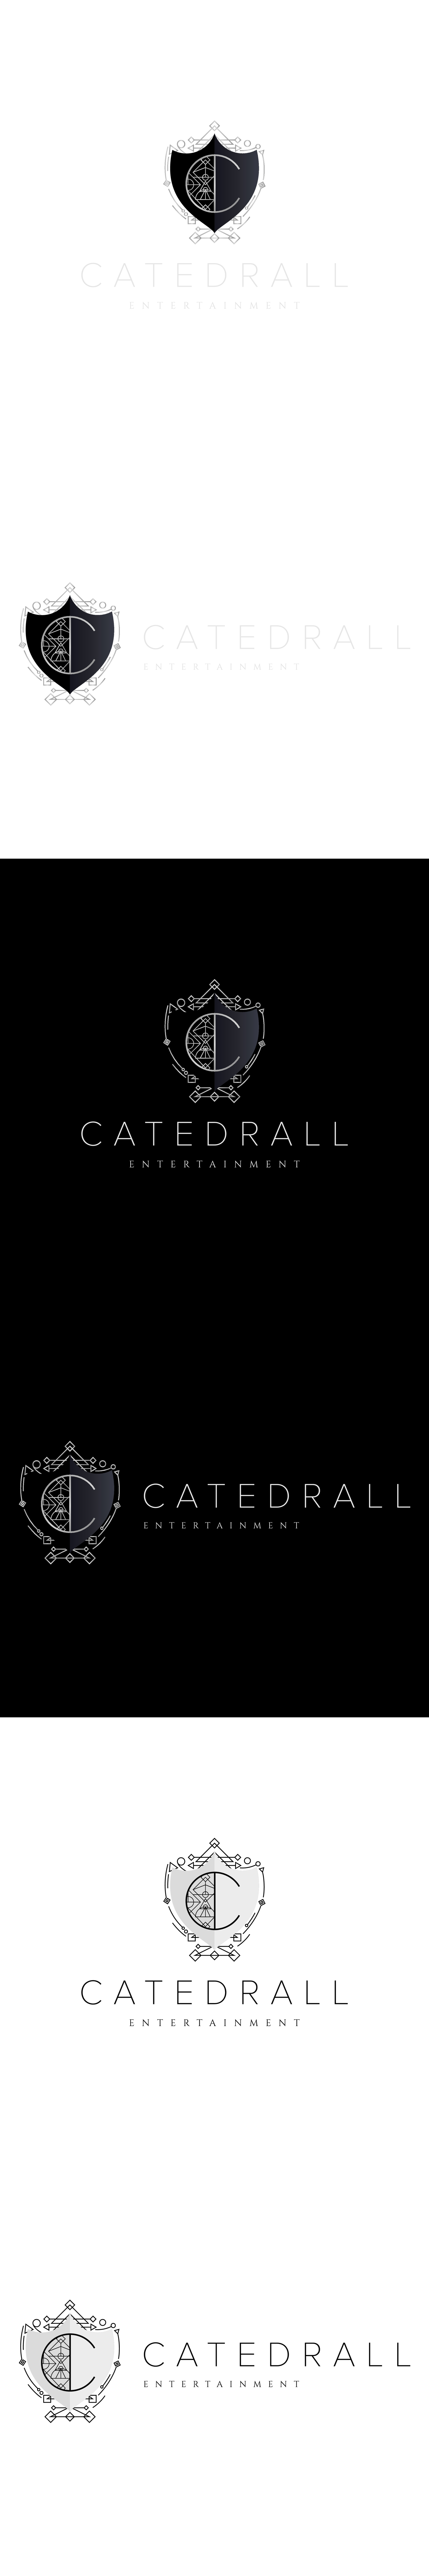 Catedrall Entertainment - luxury logo for musical events company [En/Fr]